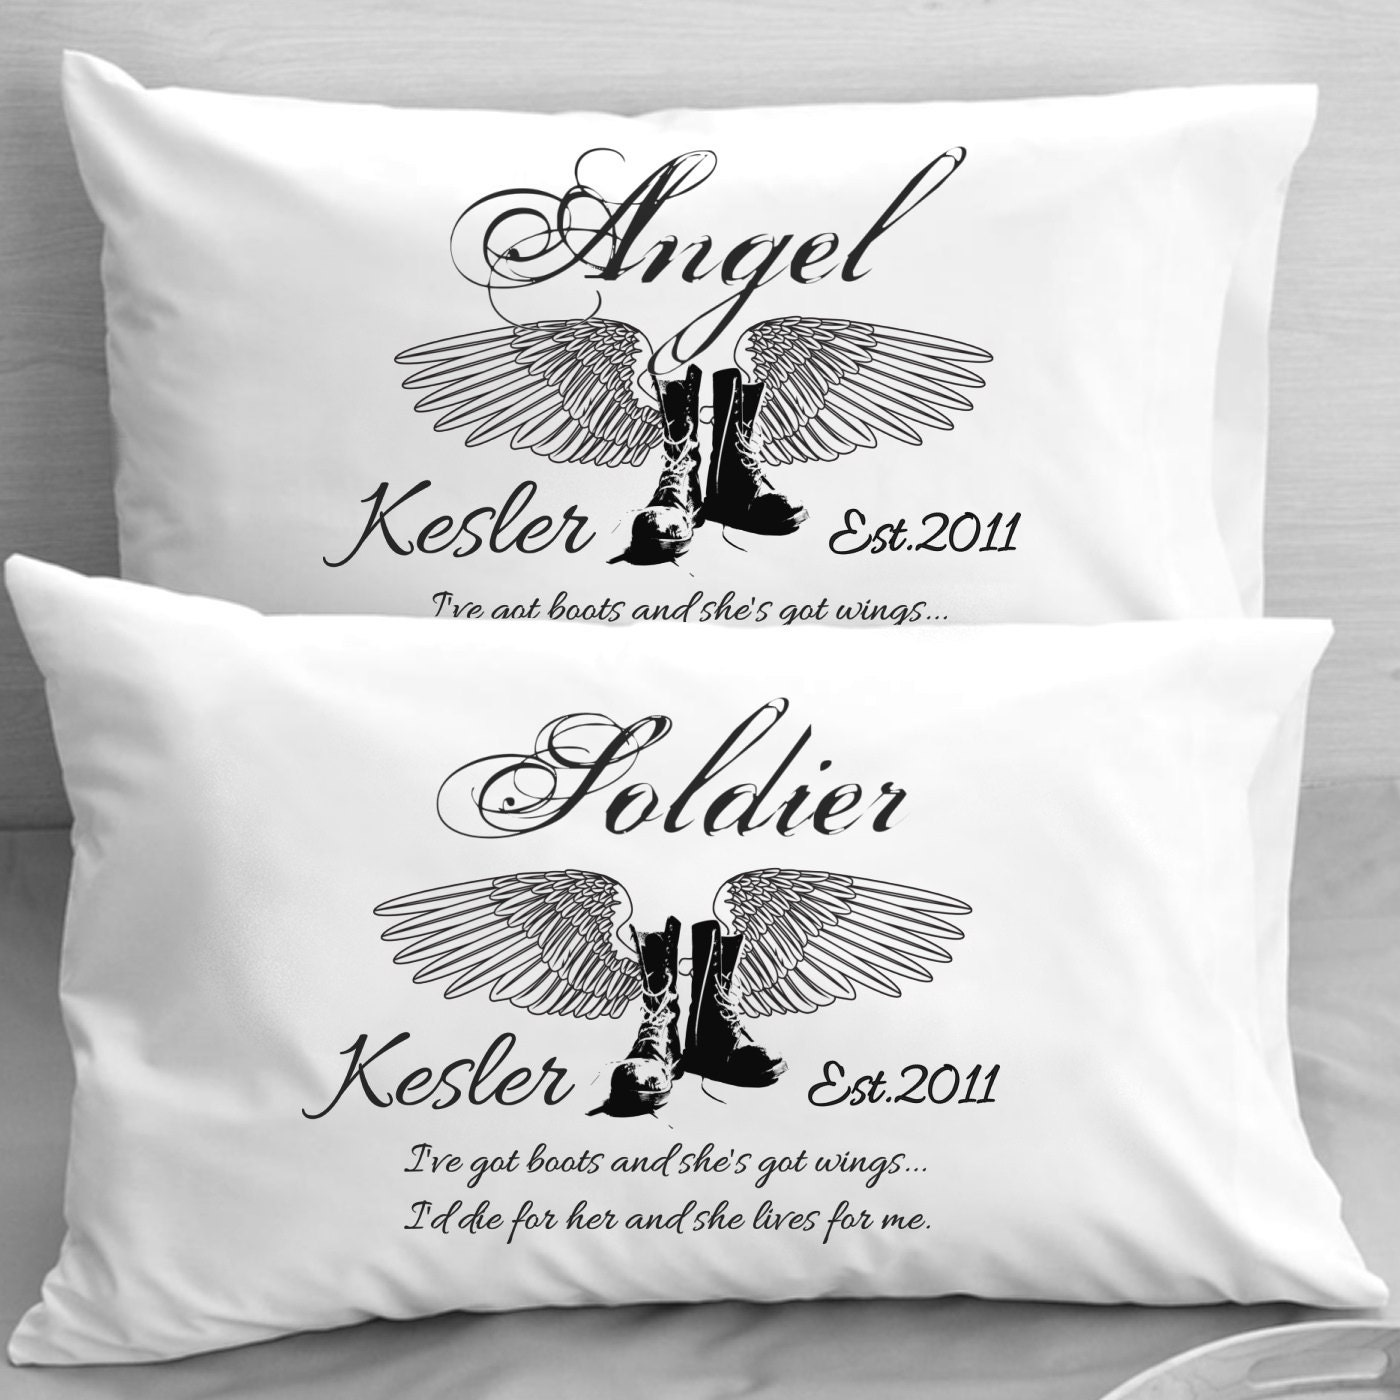 Wedding Gifts For Army Couples : Angel Military Couple Personalized Pillowcases Boots and Wings Wedding ...